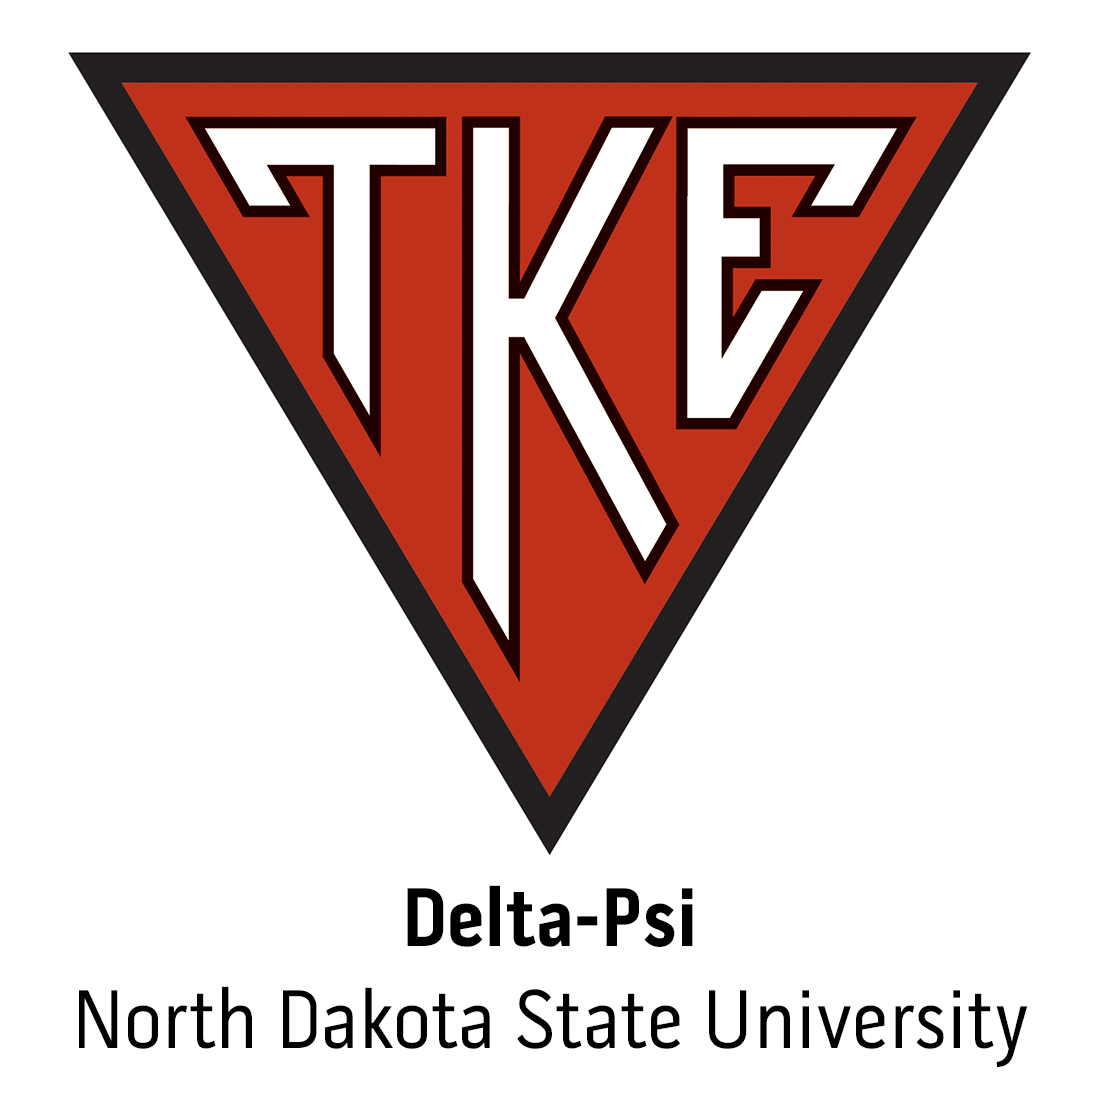 Delta-Psi Chapter at North Dakota State University